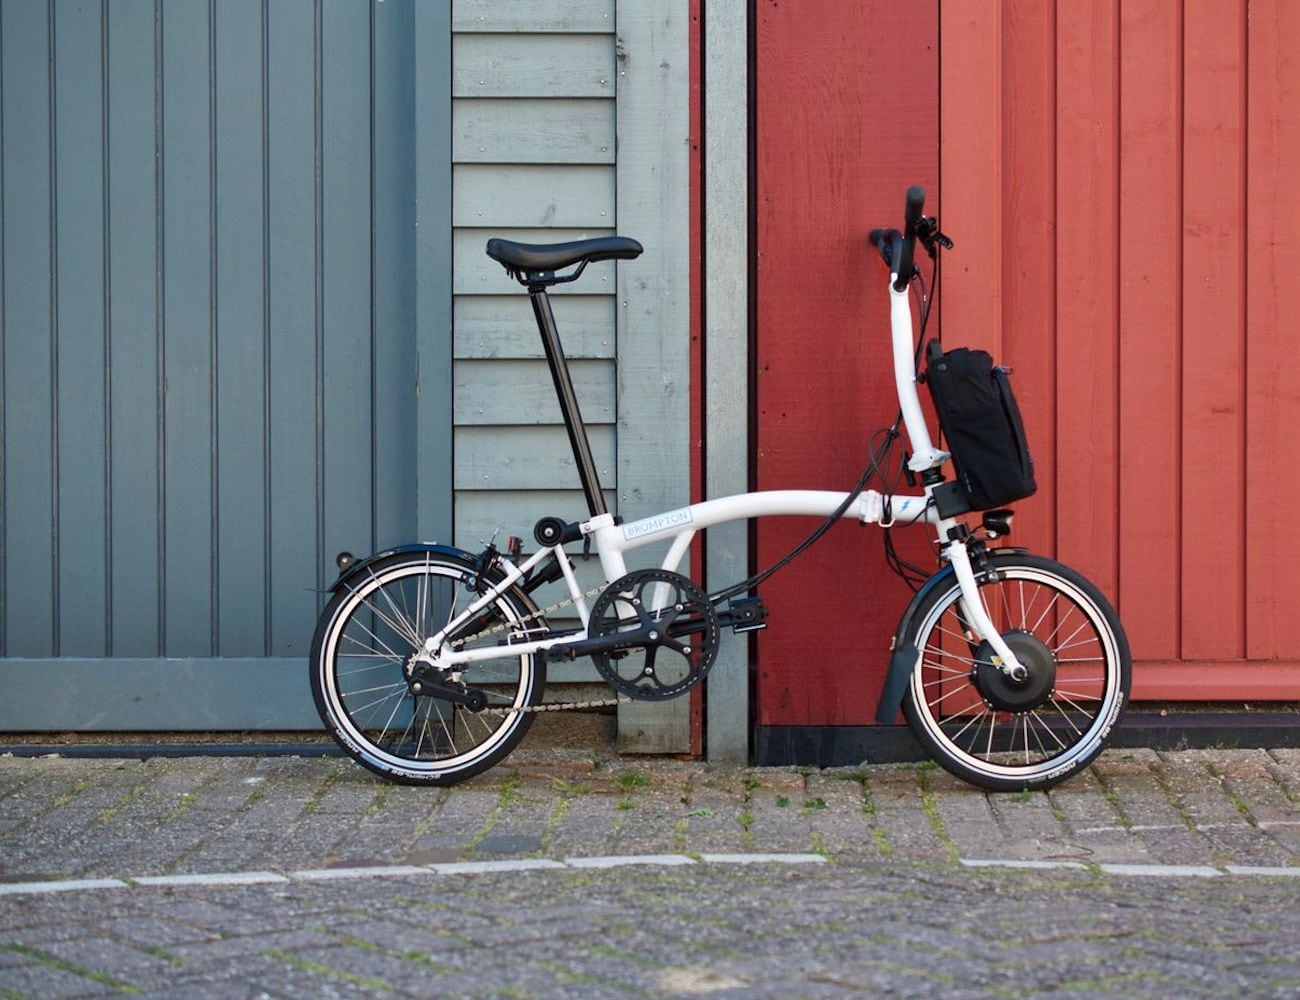 Brompton Electric Lightweight Compact Folding Bike collapses for easy portability